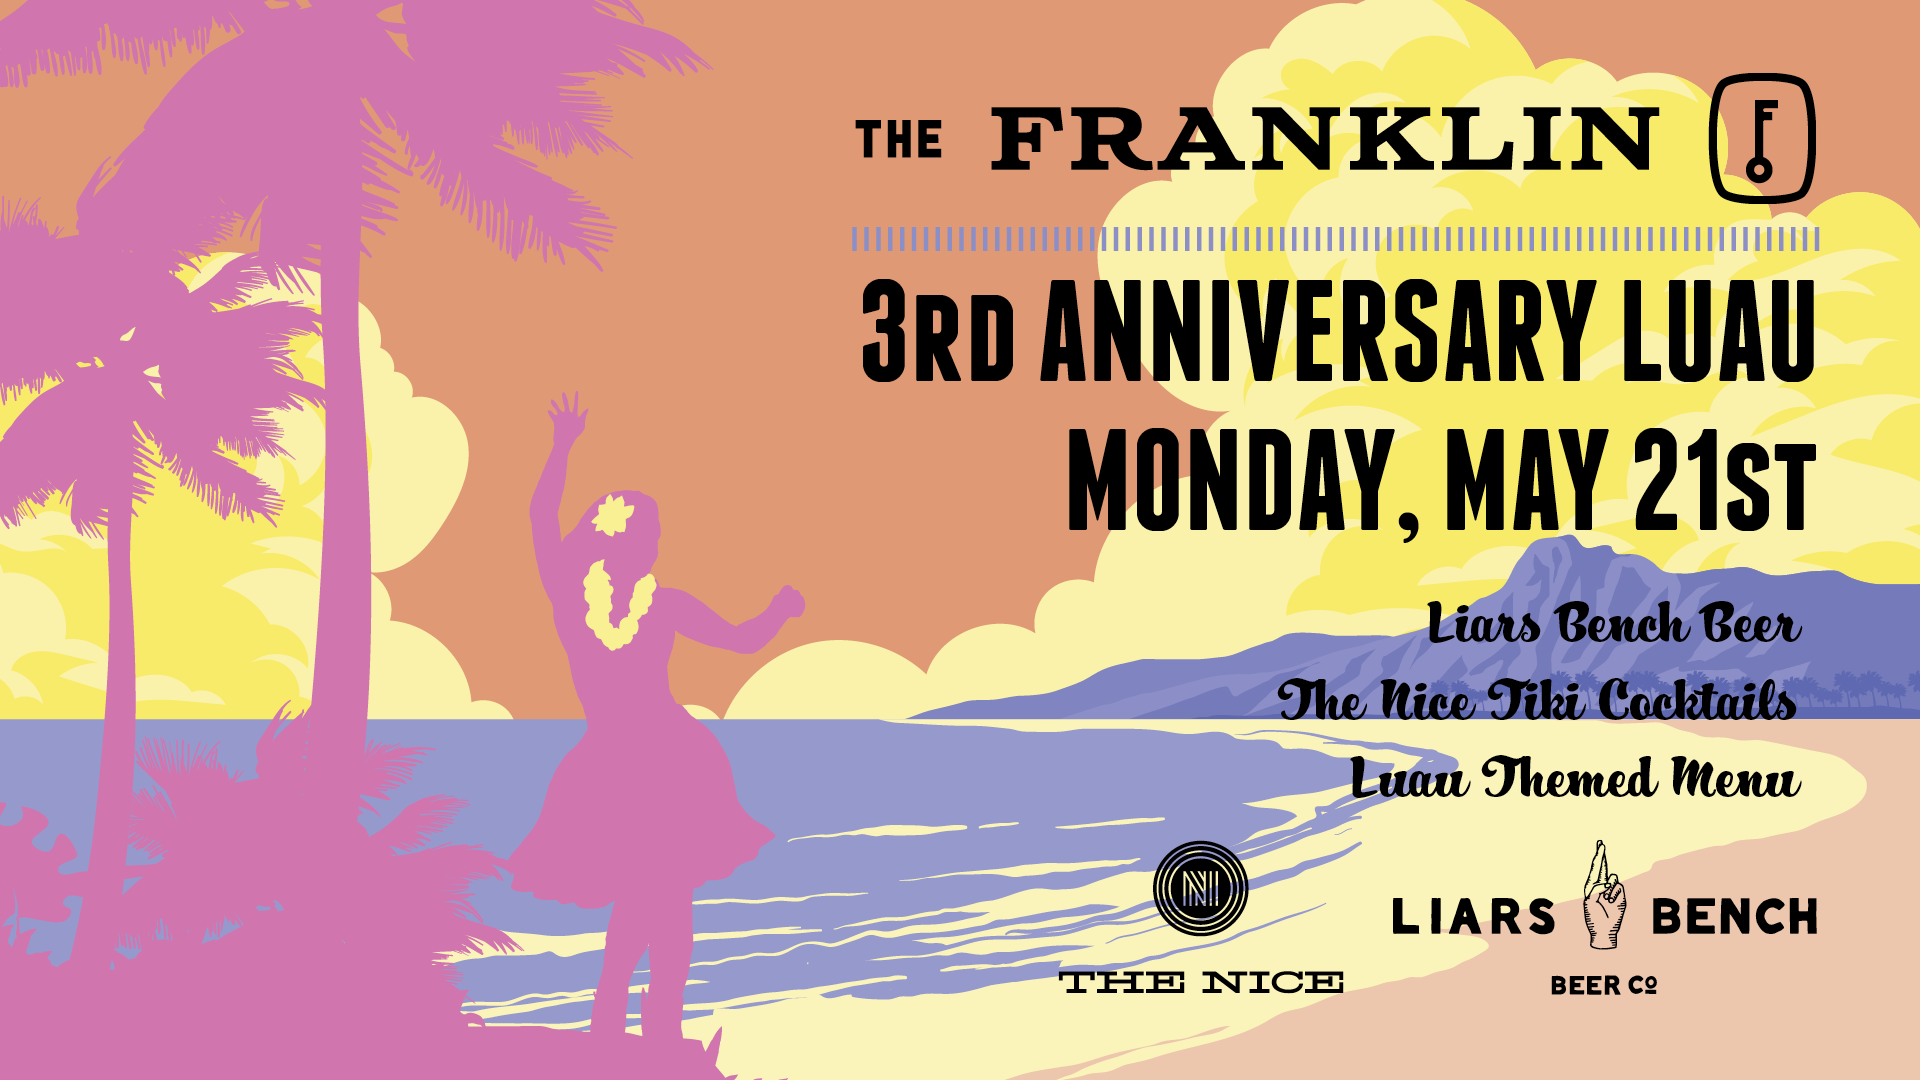 FRANKLIN_LUAU_EVENT.png